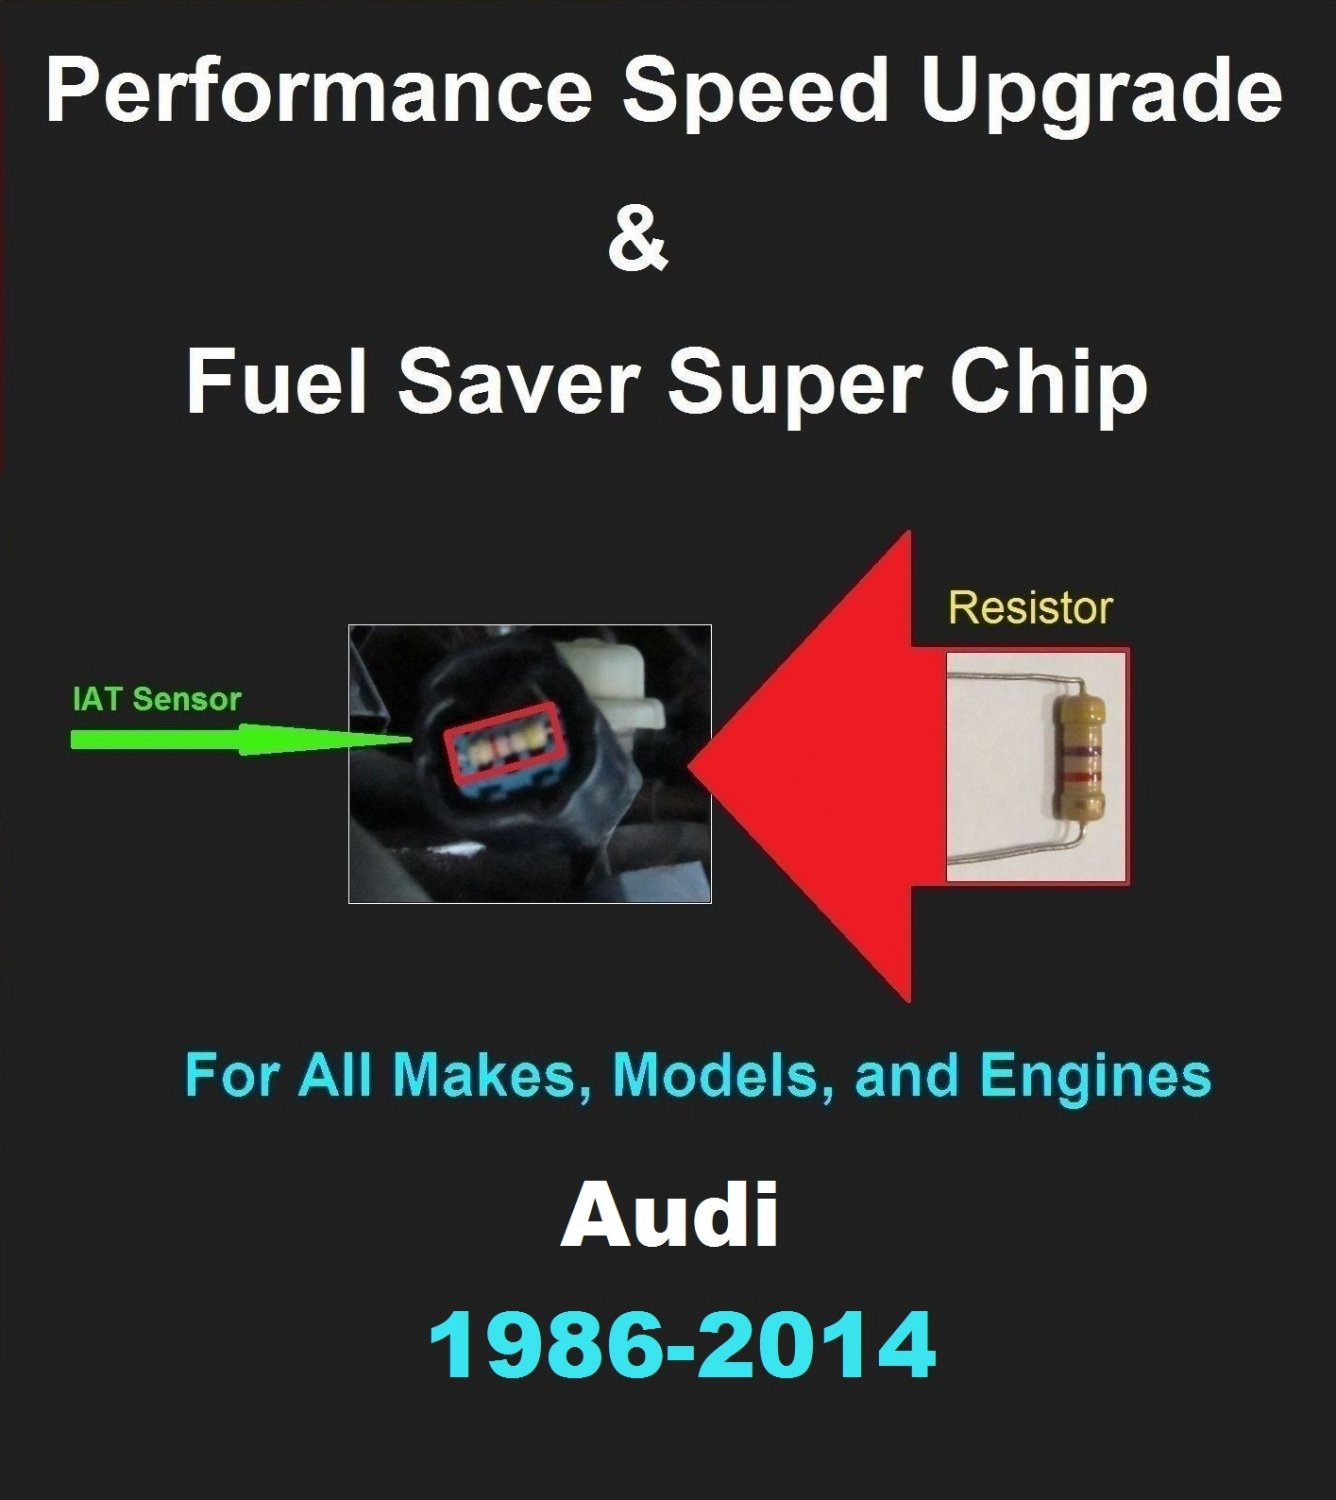 Audi Performance IAT Sensor Resistor Chip Mod Kit Increase MPG HP Speed Power Super Fuel Gas Saver